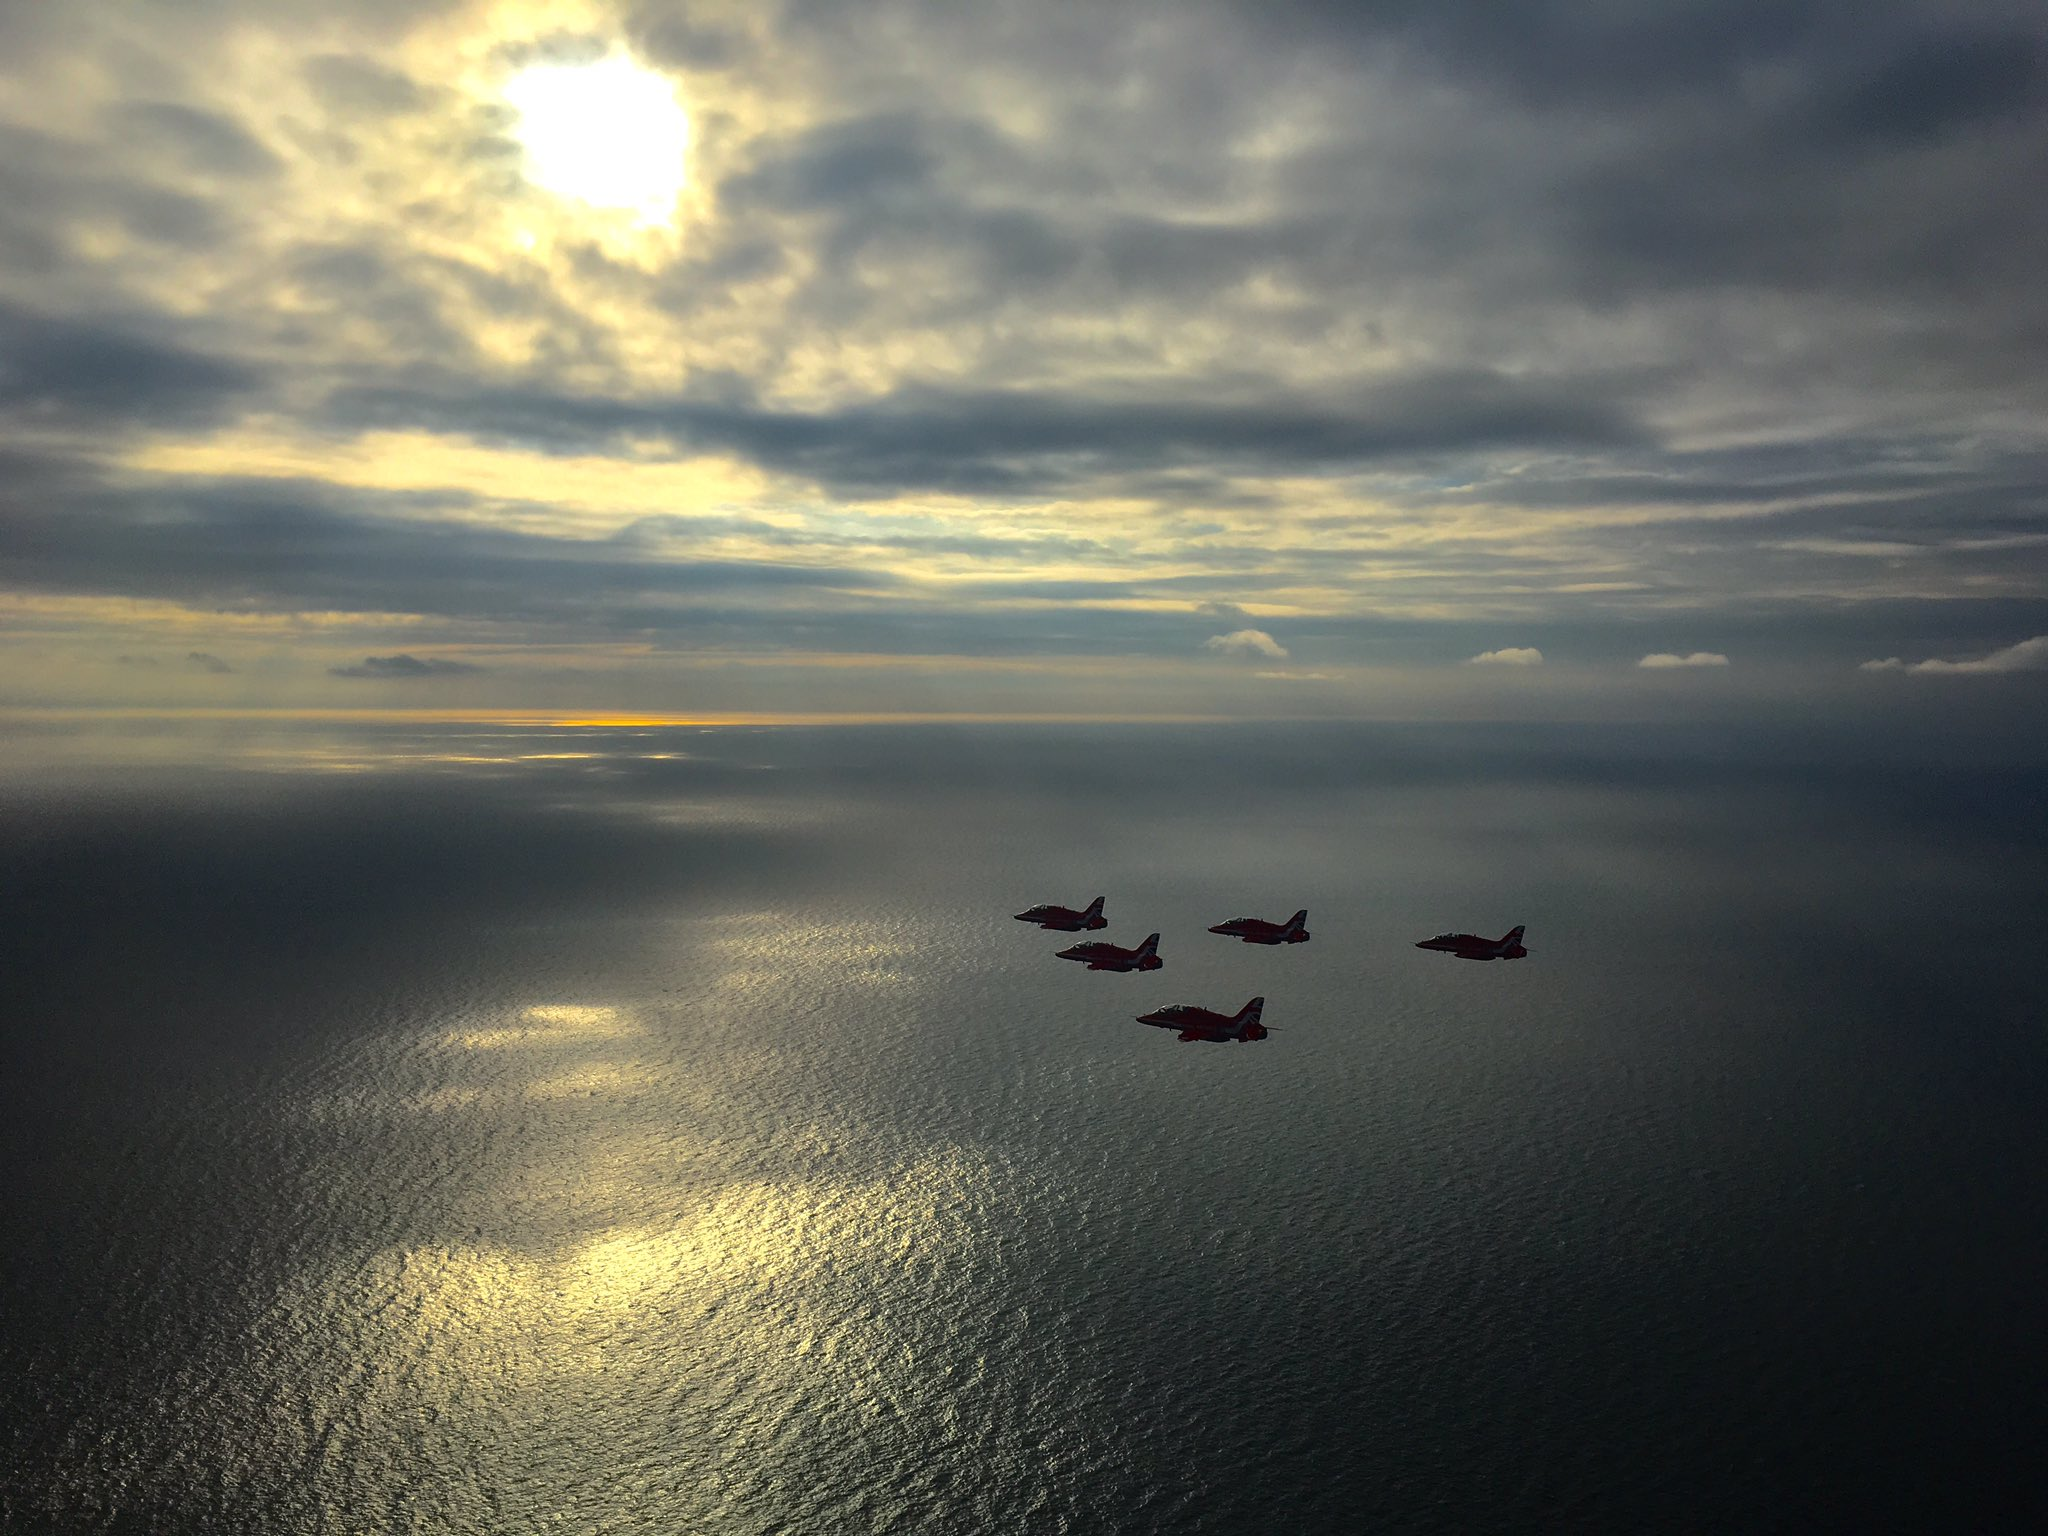 RT @RAFRed10: Beautiful transit to Dublin via the Lake District. Here's Enid basking in the evening sun across the Irish Sea https://t.co/F…